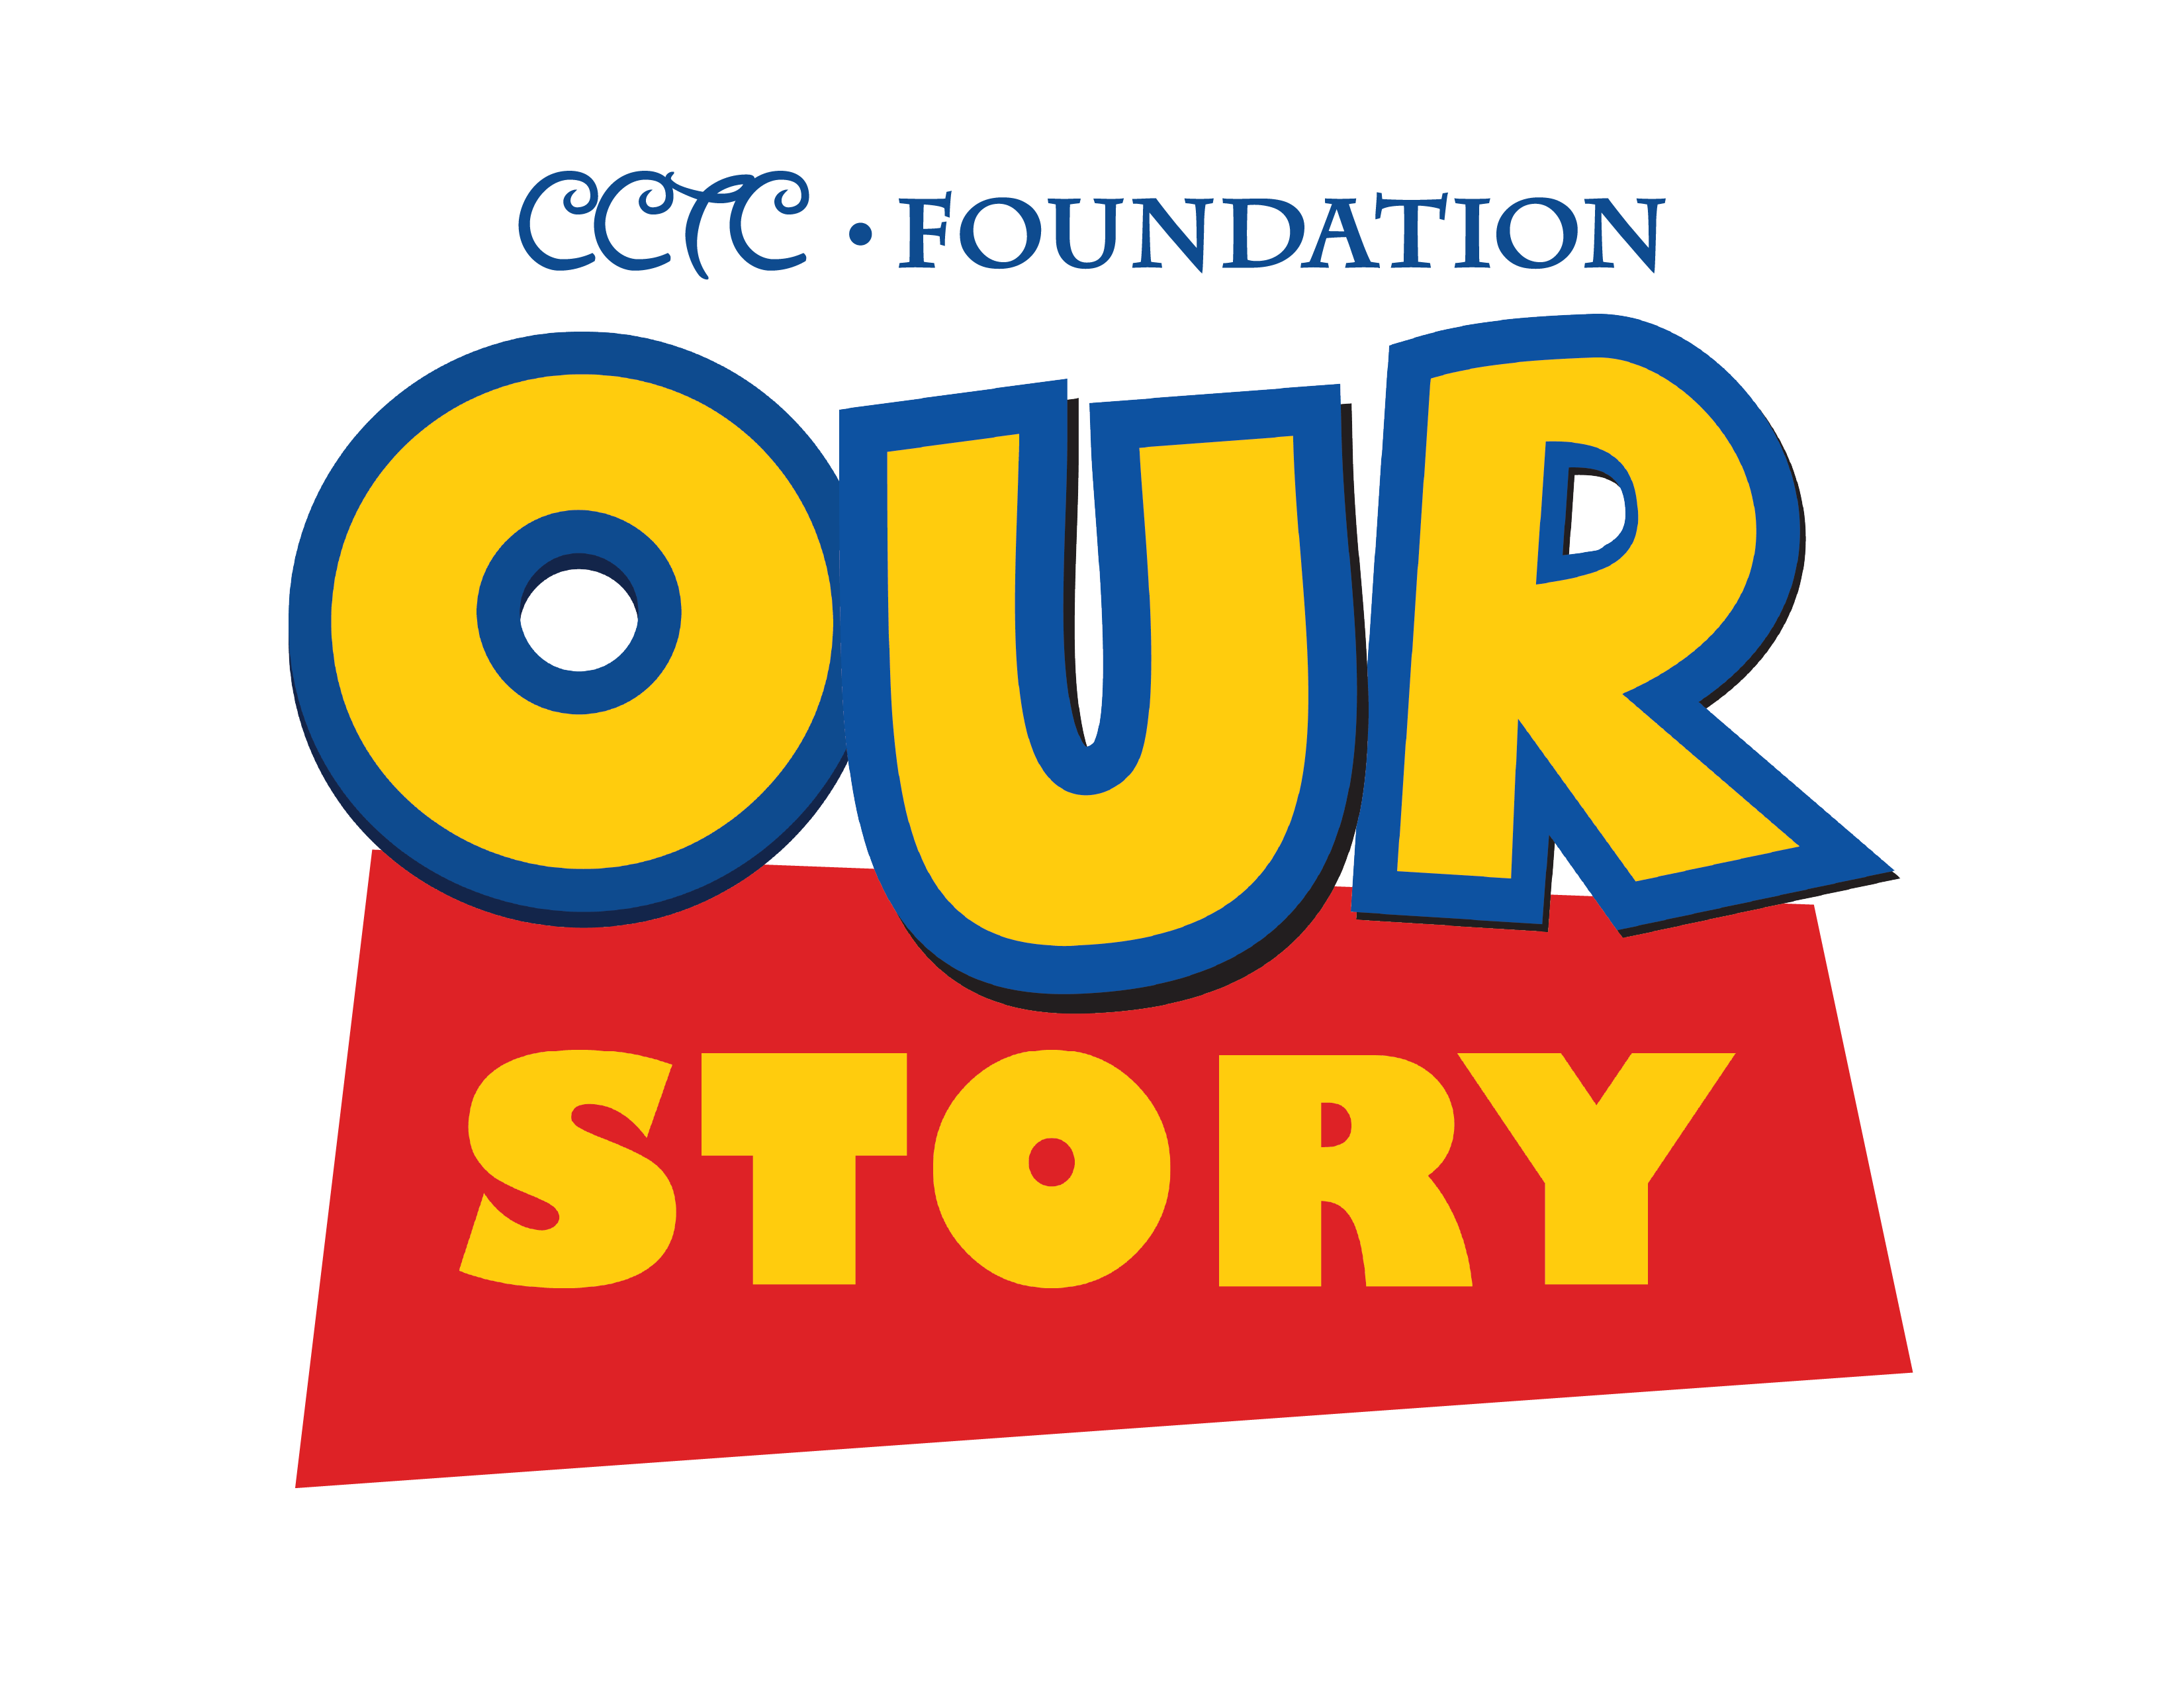 Our Story - Employee Giving Campaign